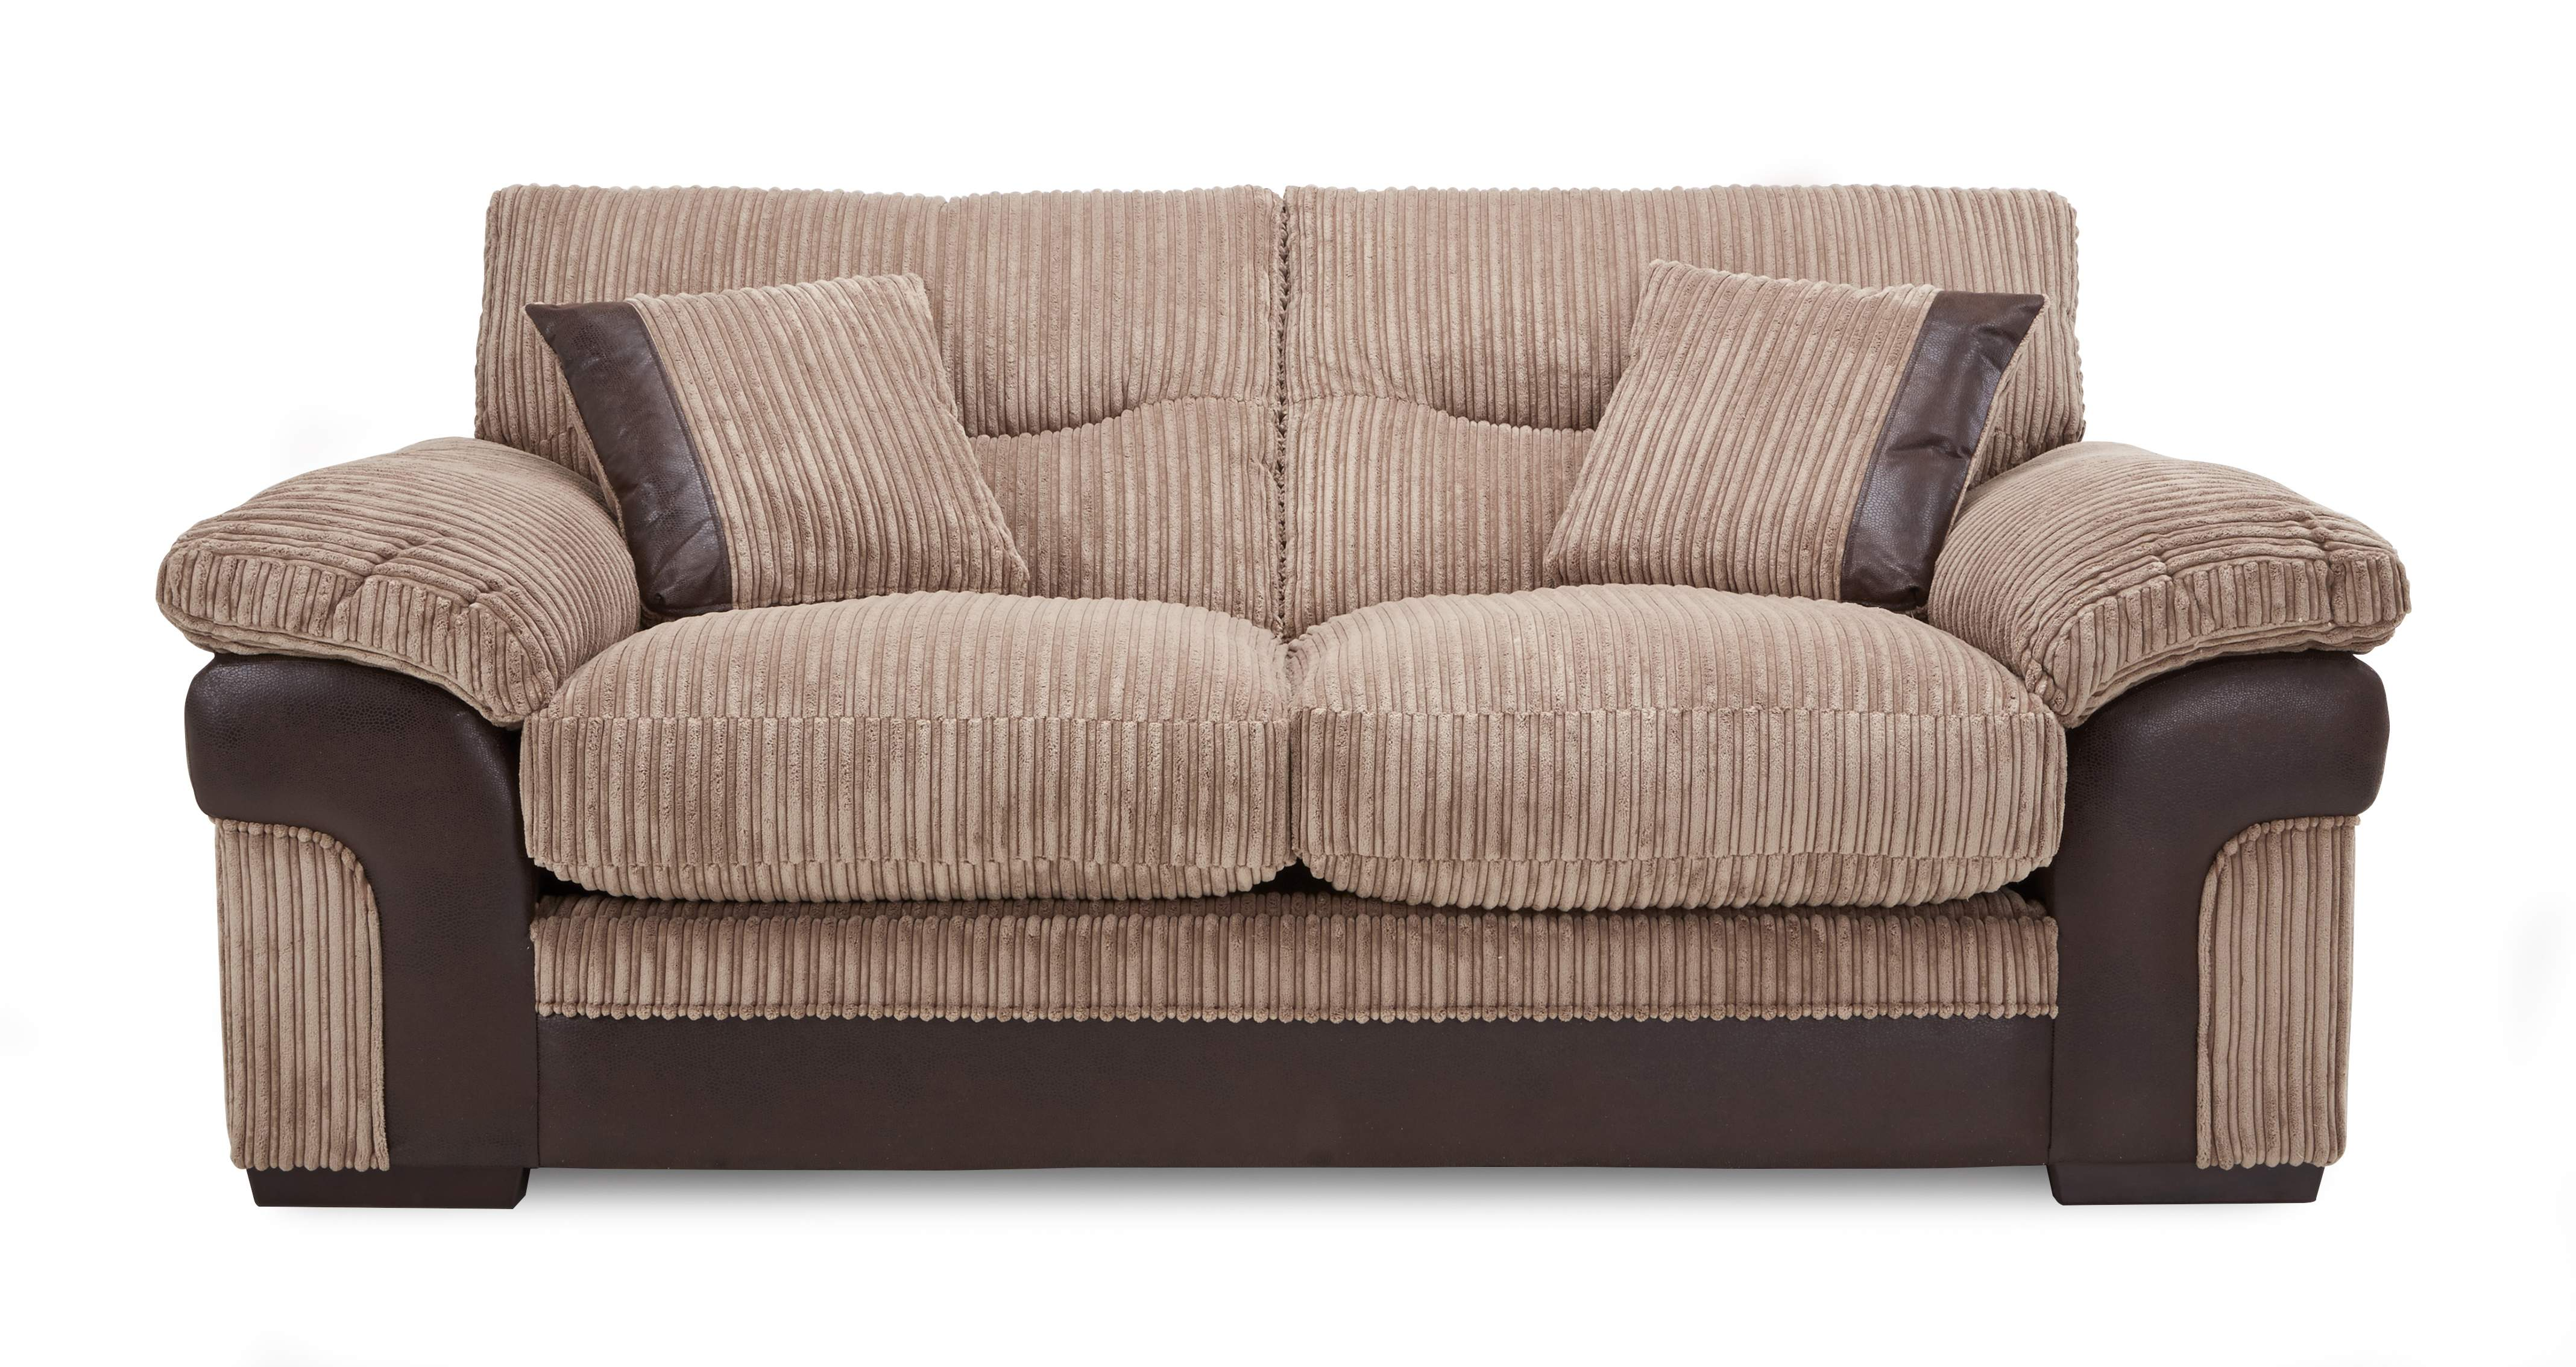 Dfs Heath Set Incl 2 Seater Fabric Sofa Bed Chair